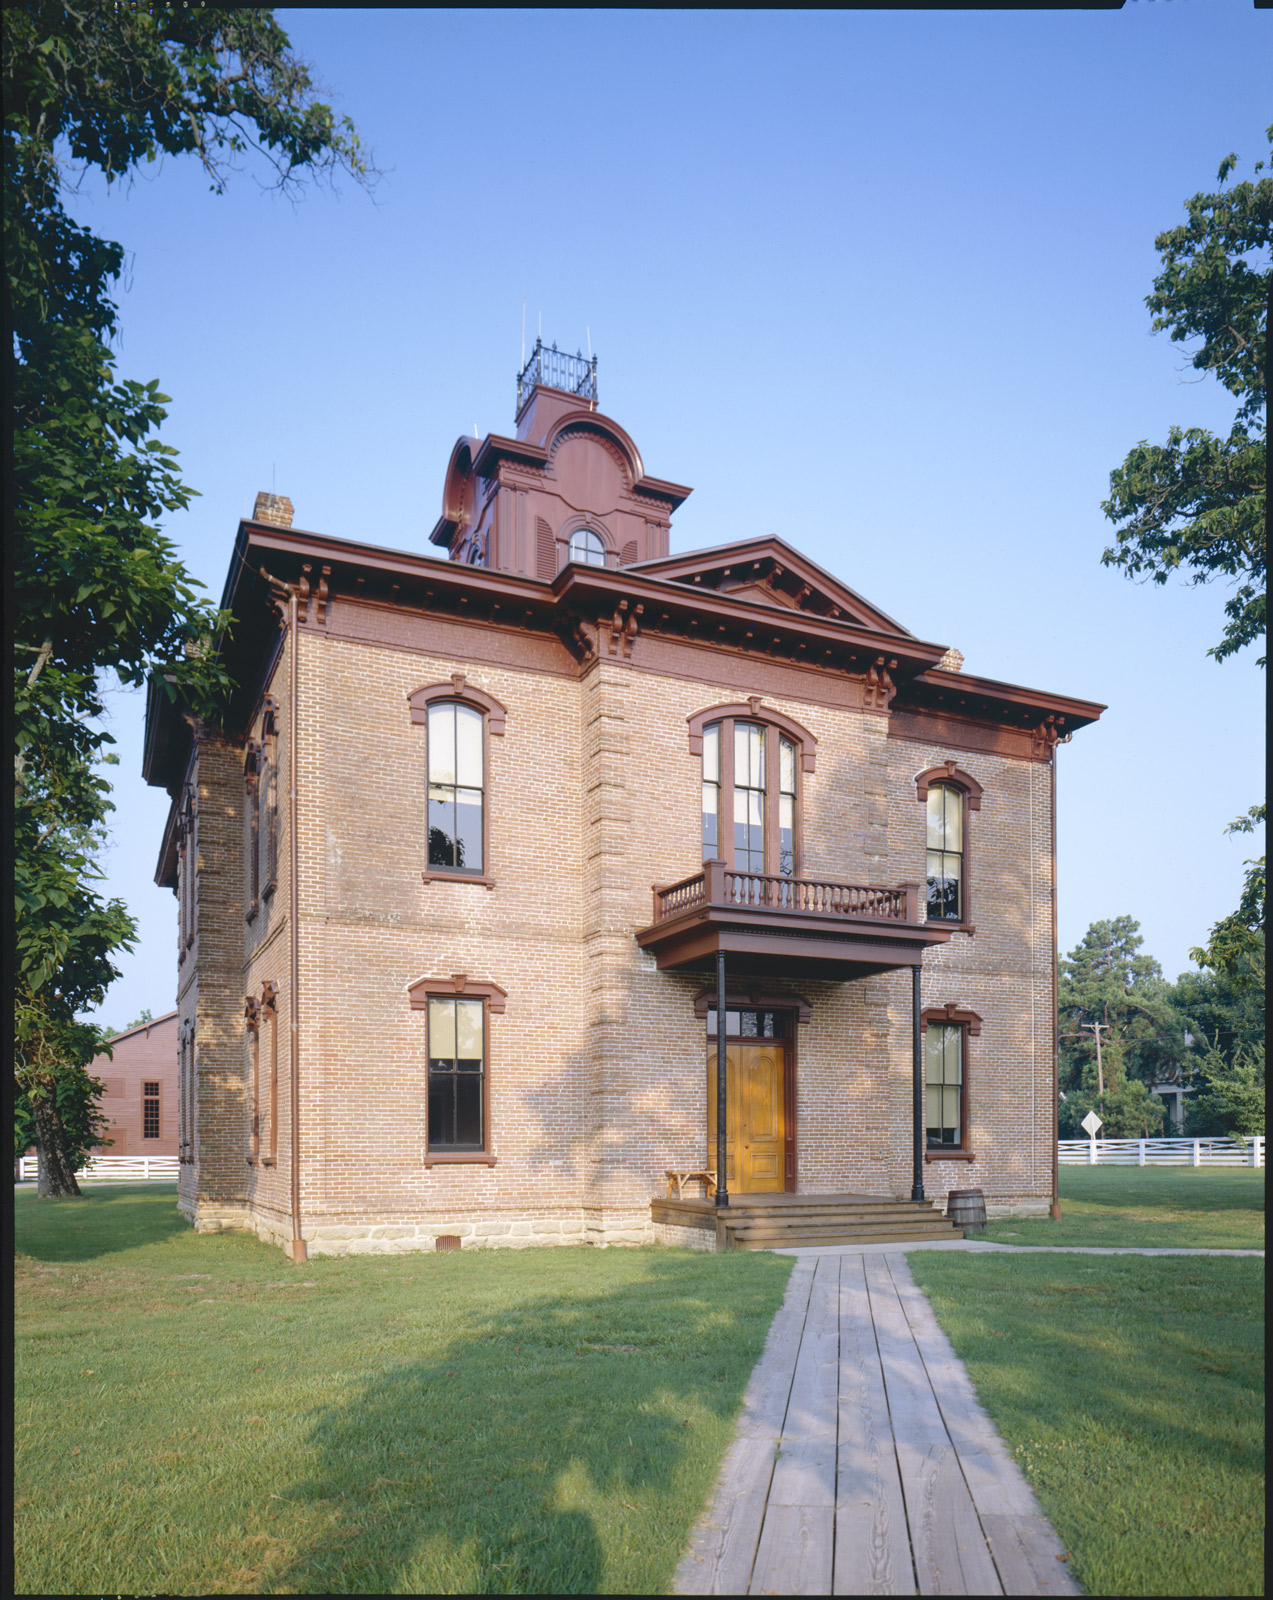 1874 Courthouse   VIEW PROJECT →